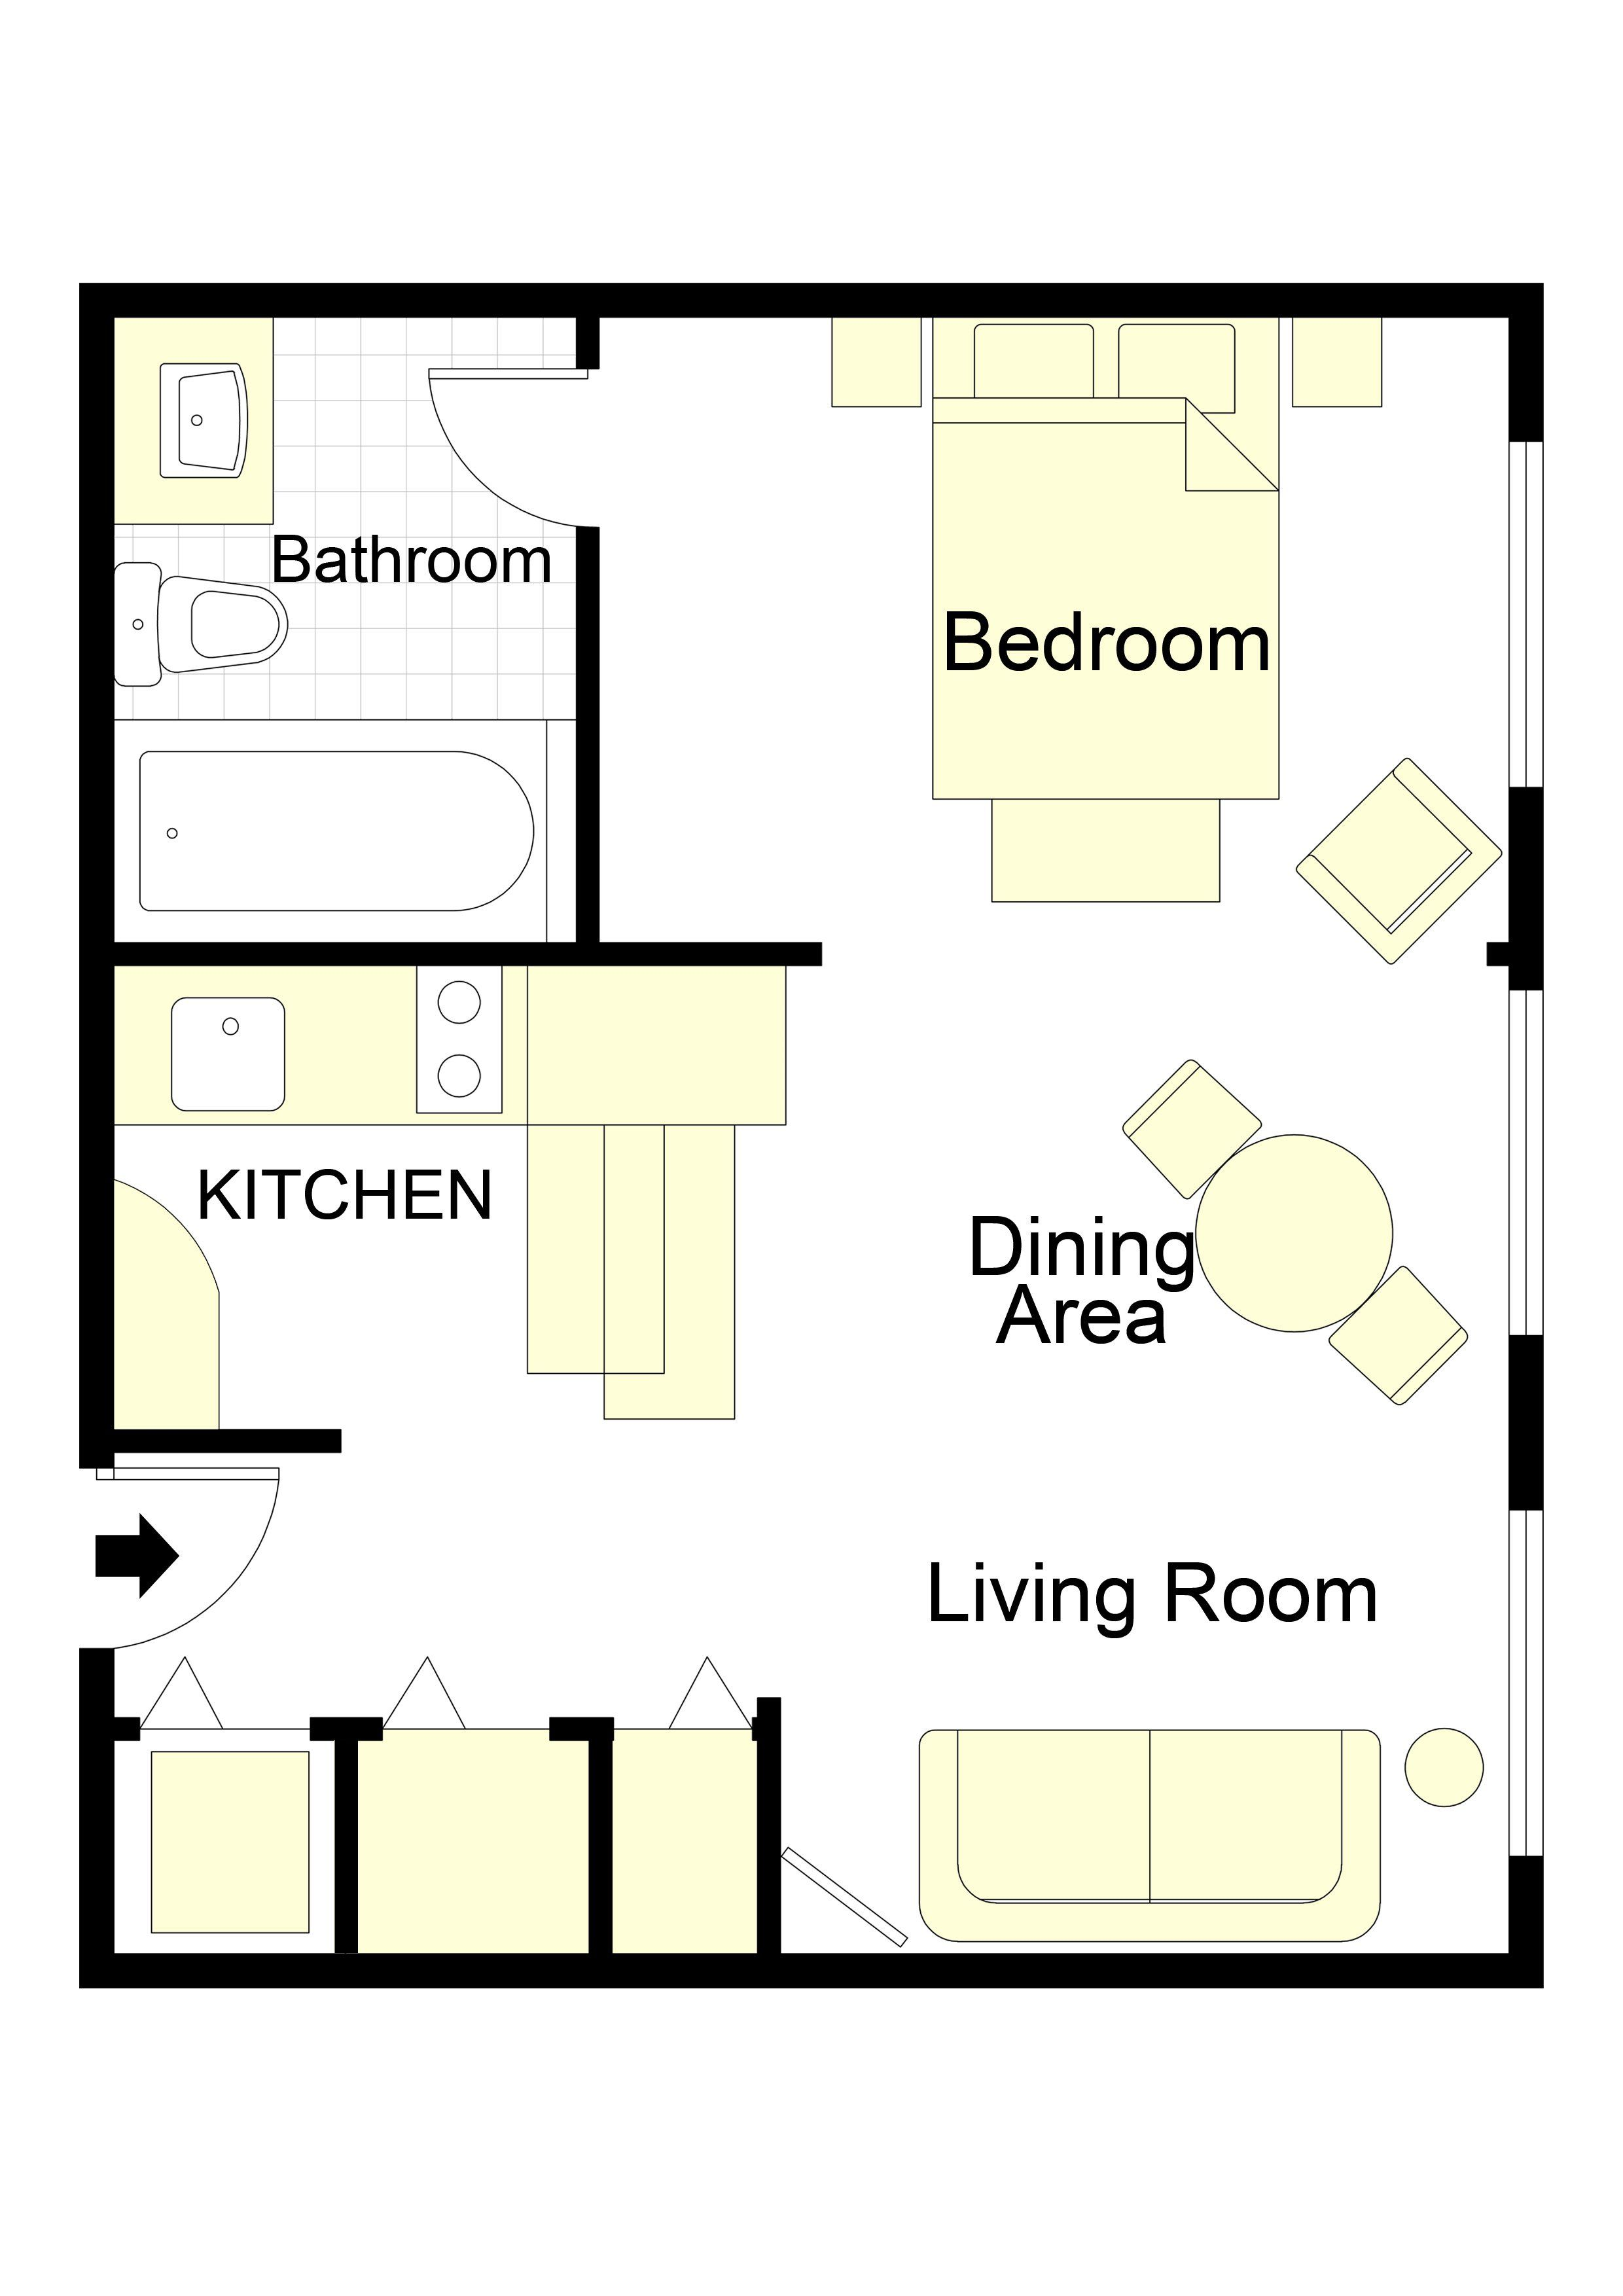 Cerons Apartment Floorplan | guest house | House, Rental apartments on vacation house plans, water house plans, cheapest house plans, manufactured home house plans, guest house plans, multifamily house plans, house house plans, 1200 square feet house plans, internet house plans, condo house plans, multi-unit house plans, apartment house plans, one story square house plans, townhouse house plans, small house plans, residential house plans, engineering house plans, car house plans, commercial house plans,